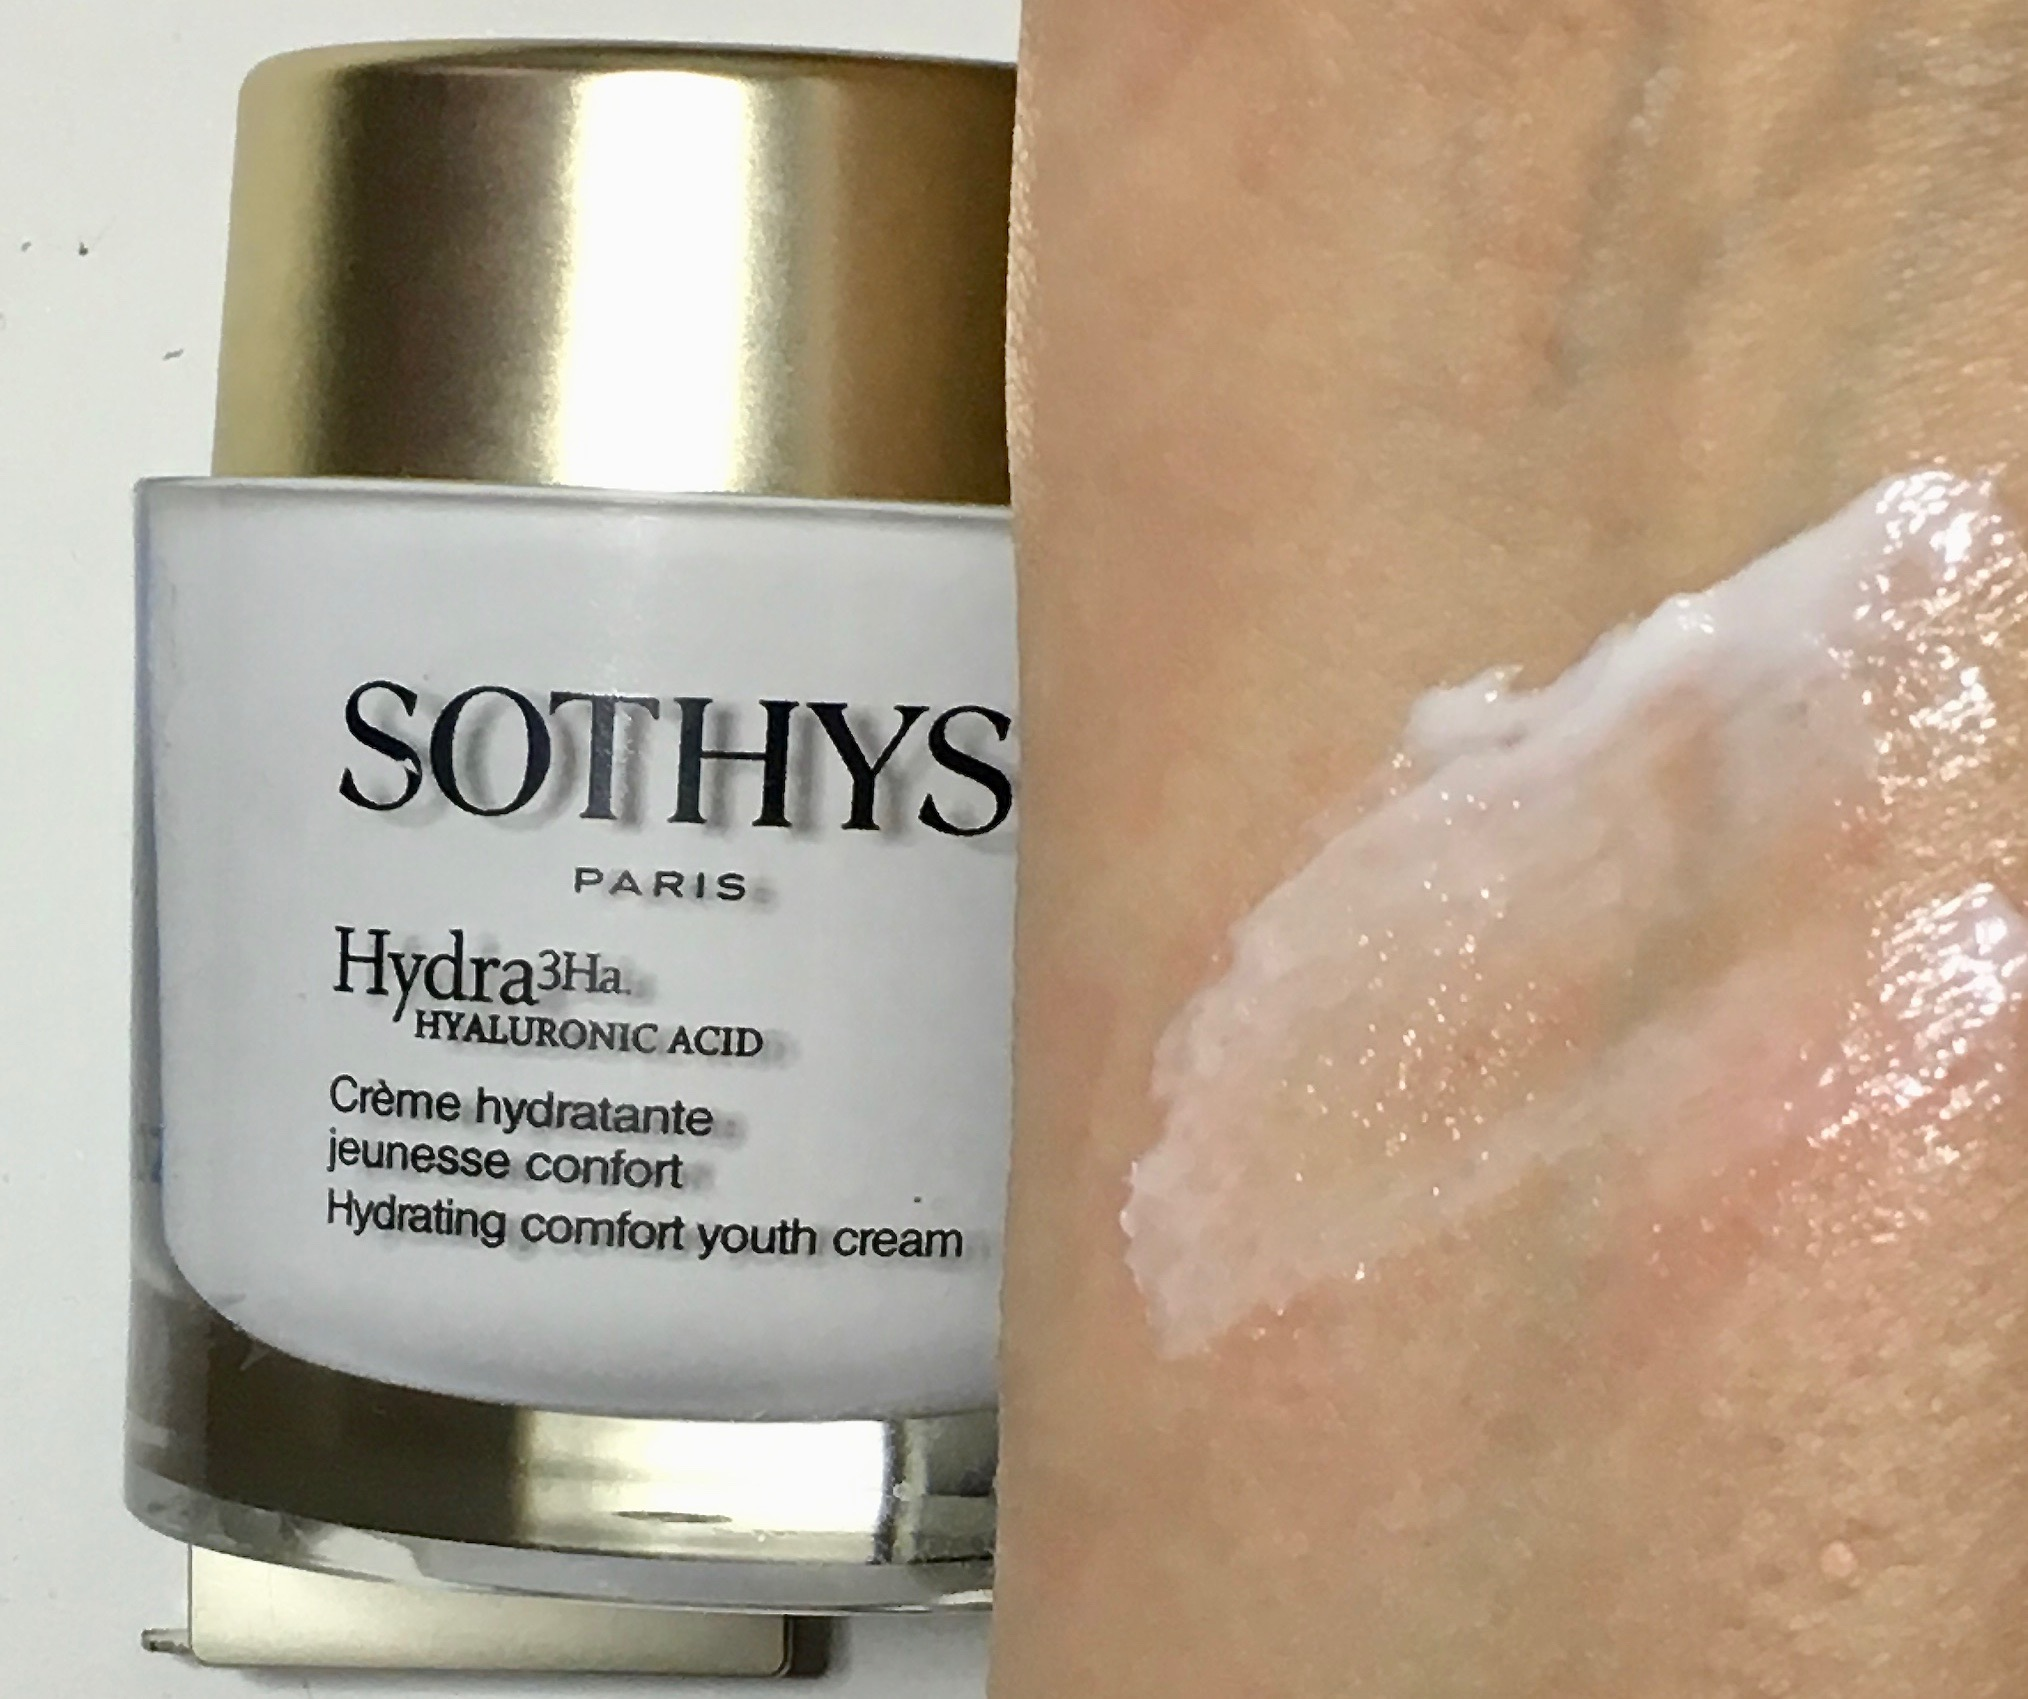 Sothys Hydra3HA Discovery Kit - Hydrating Comfort Youth Cream